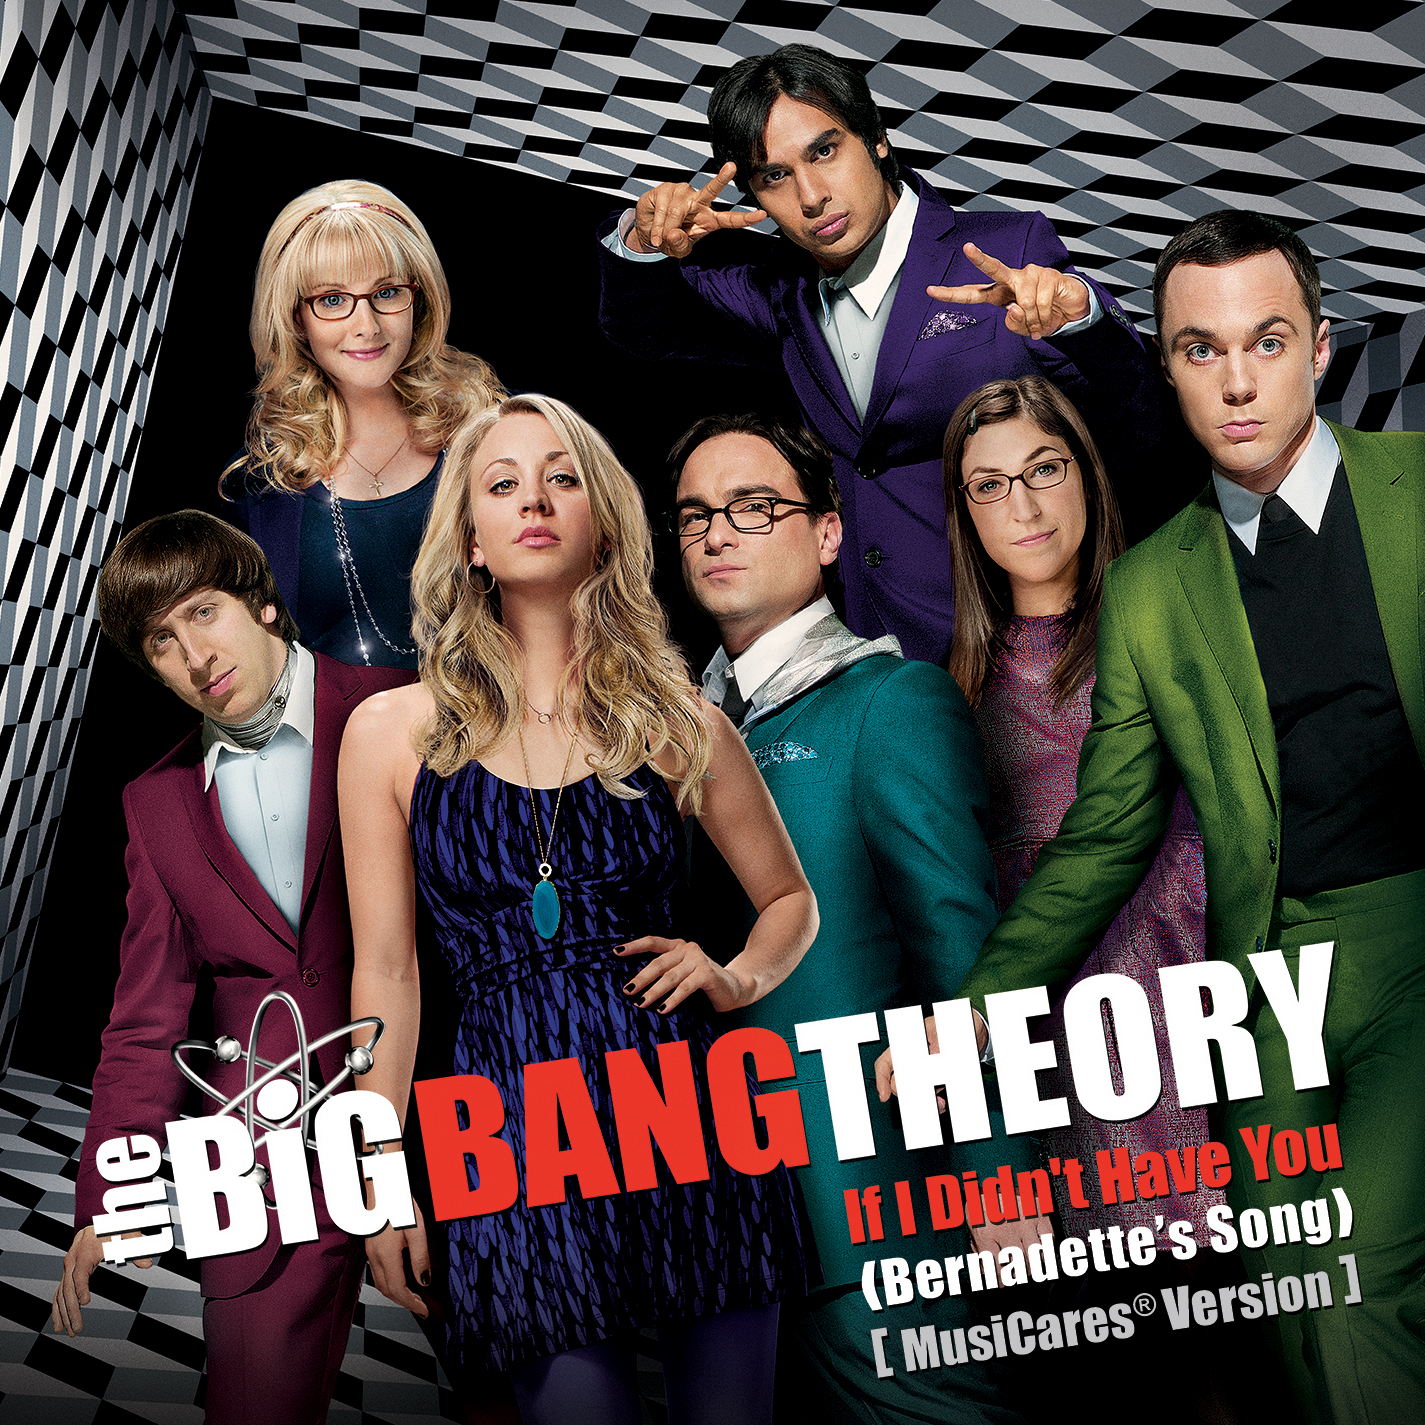 original song performed by the cast of the big bang theory in october 24 episode released today